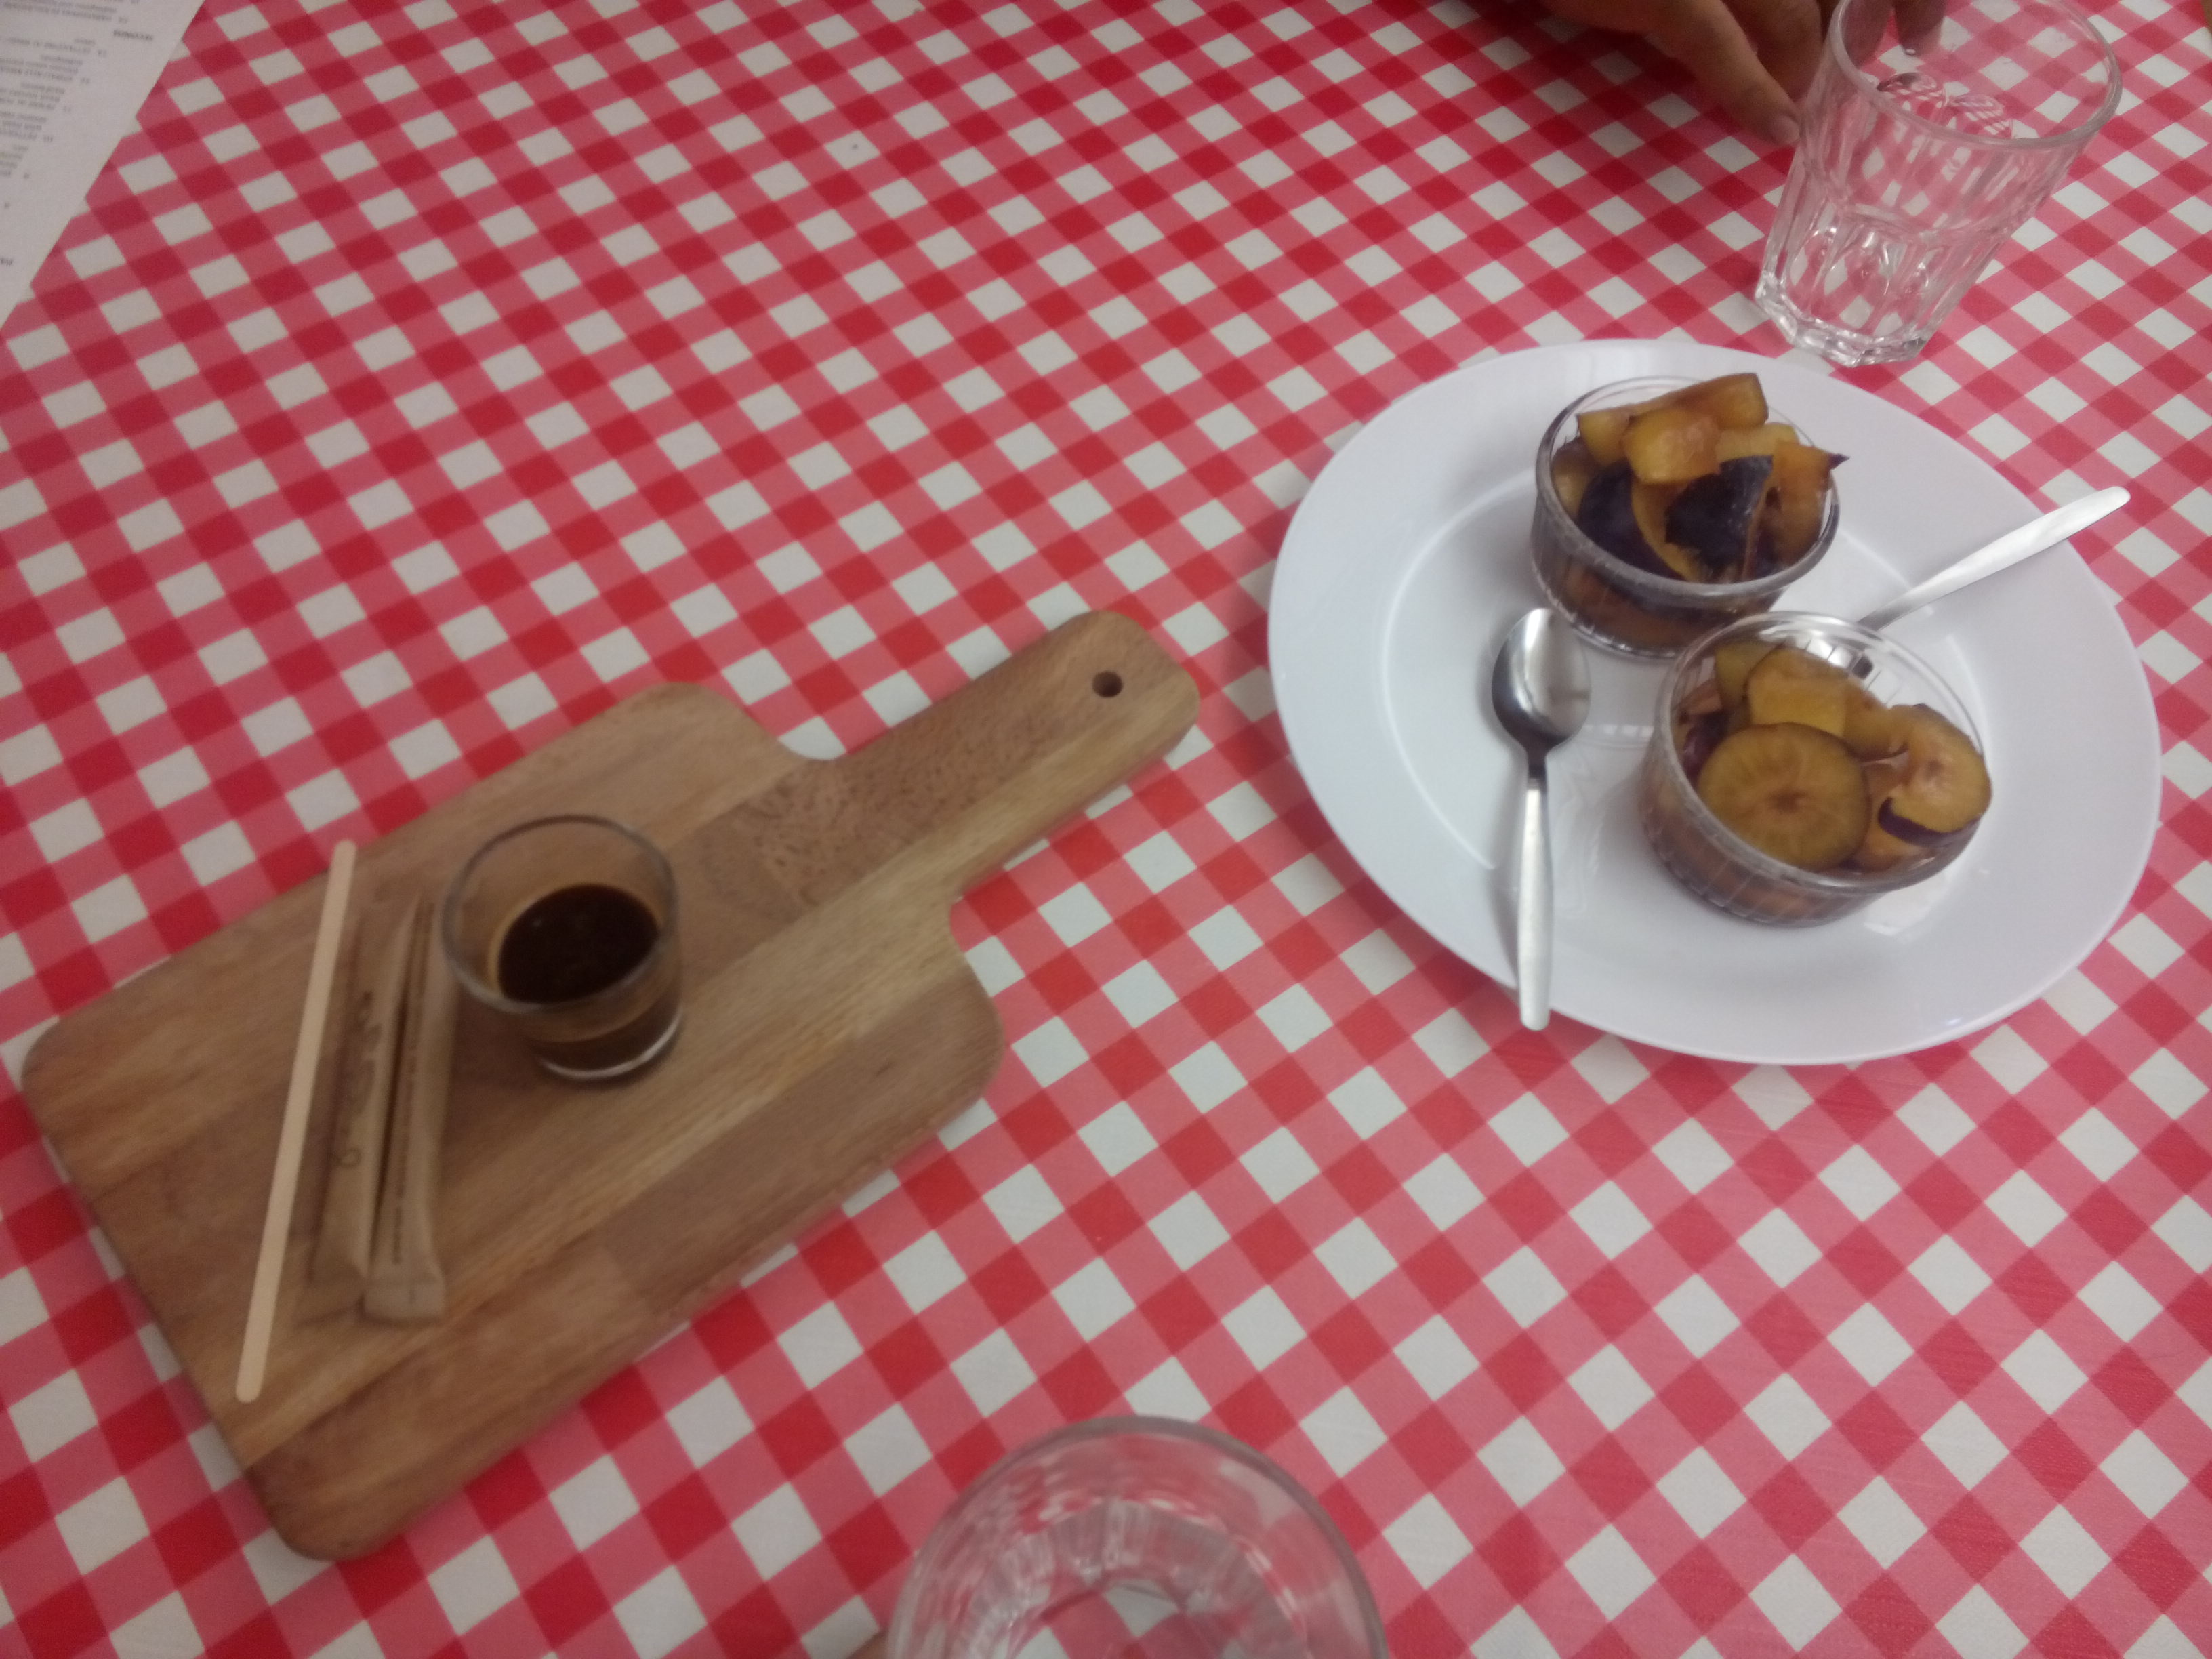 A red checkered table with a wooden paddle carrying a tiny espresso glass, alongside a white plate with two bowls of sliced plums